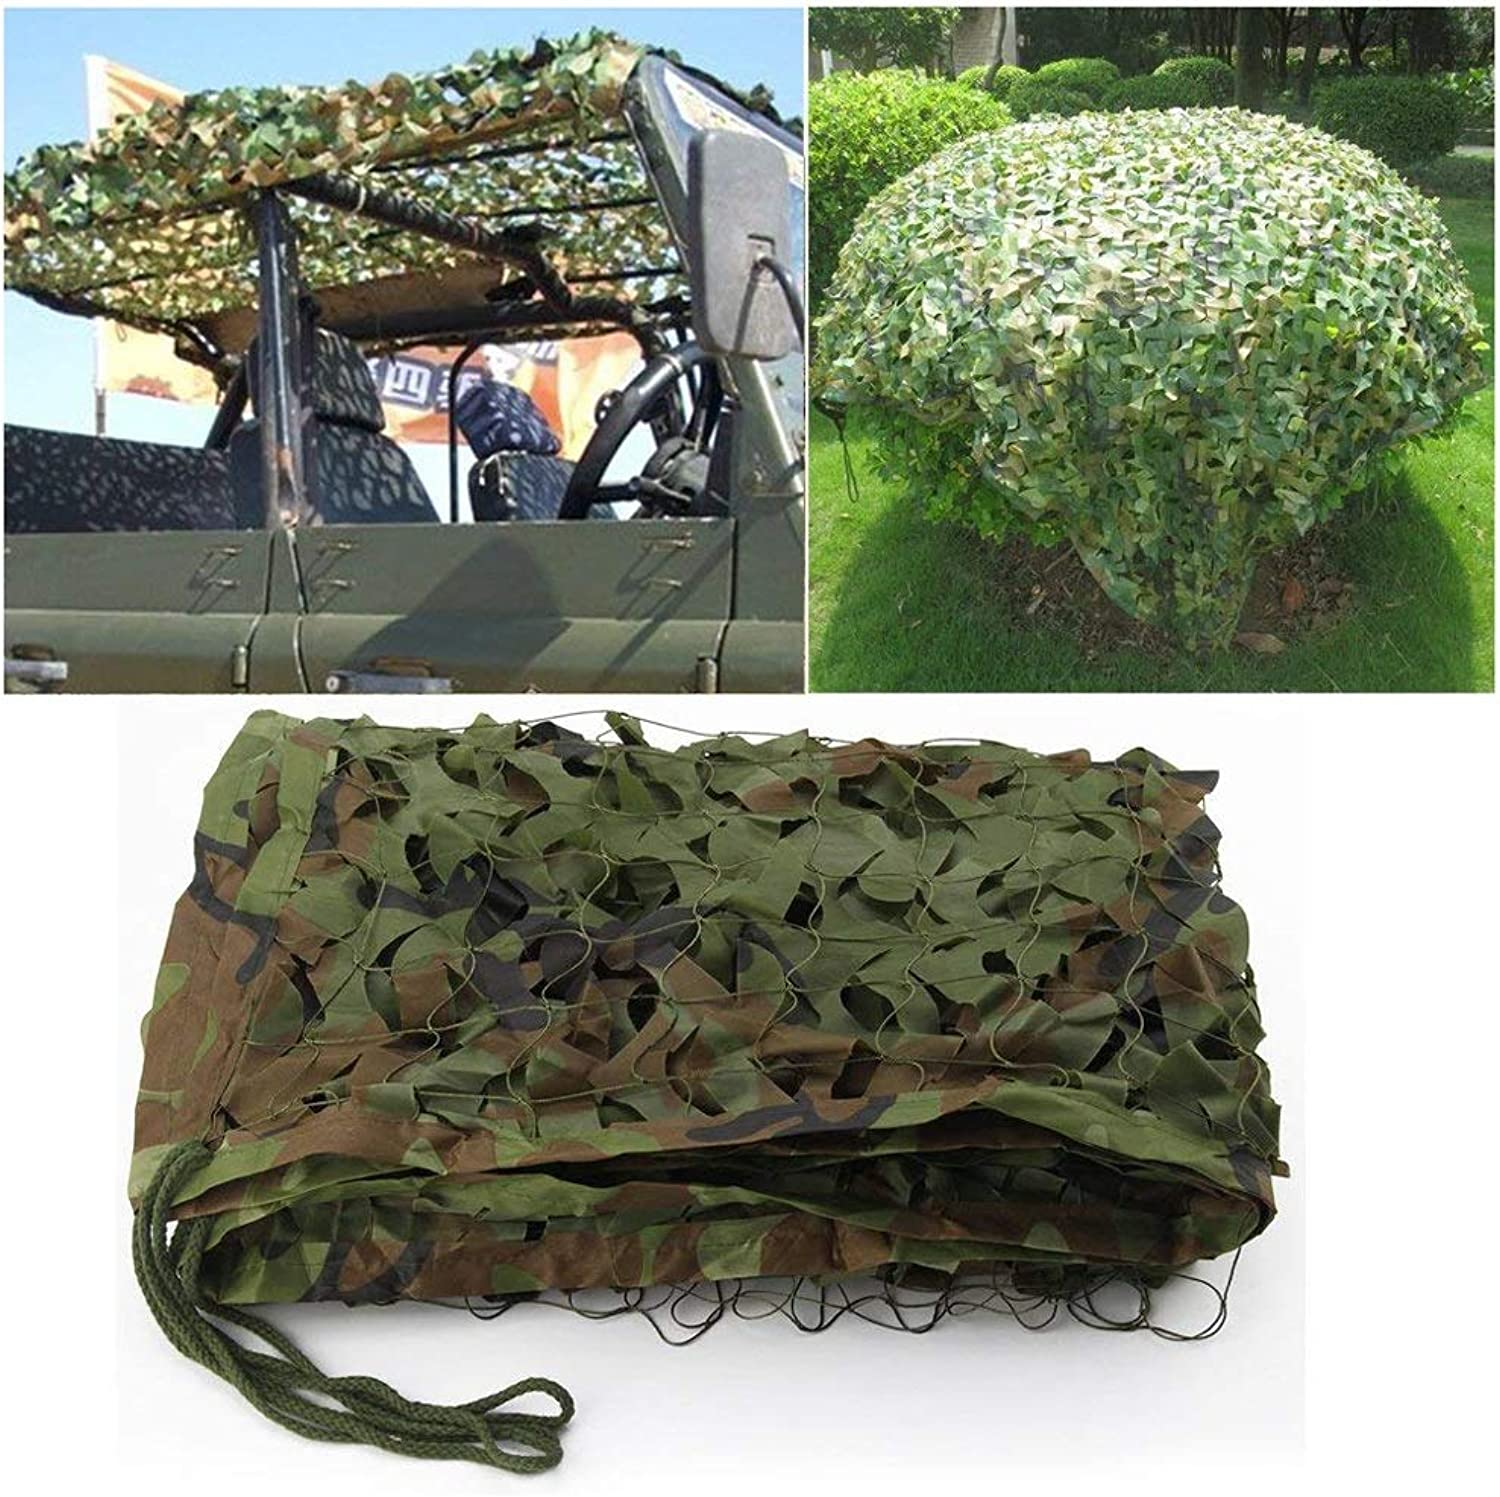 Camouflage Net Oxford Cloth Thickening for Outdoor Hidden Sunshade Shooting Military AntiUV Halloween Decoration (color   B, Size   10m20m)